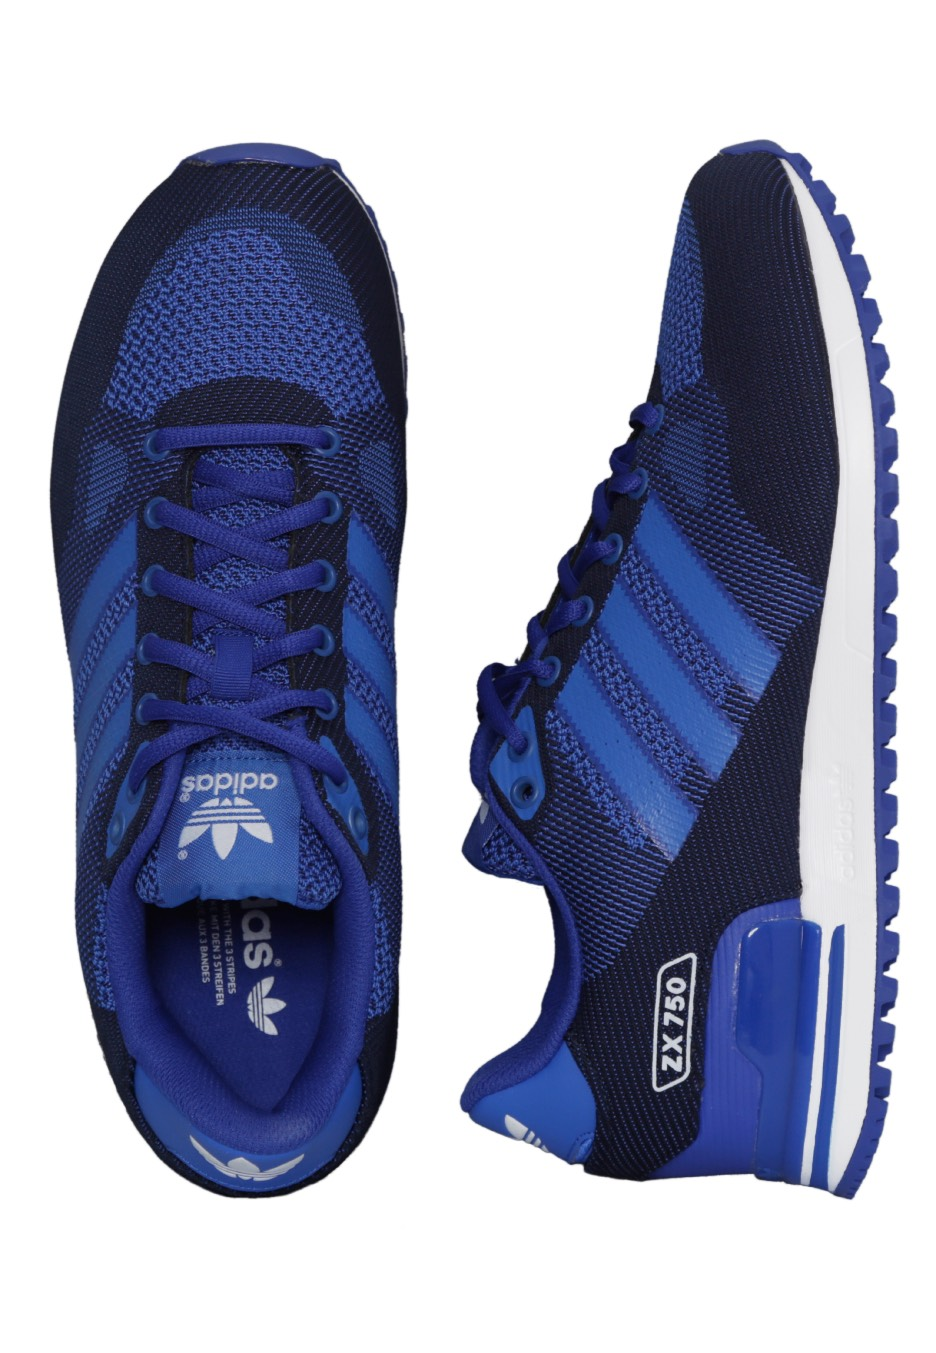 adidas shoes 750